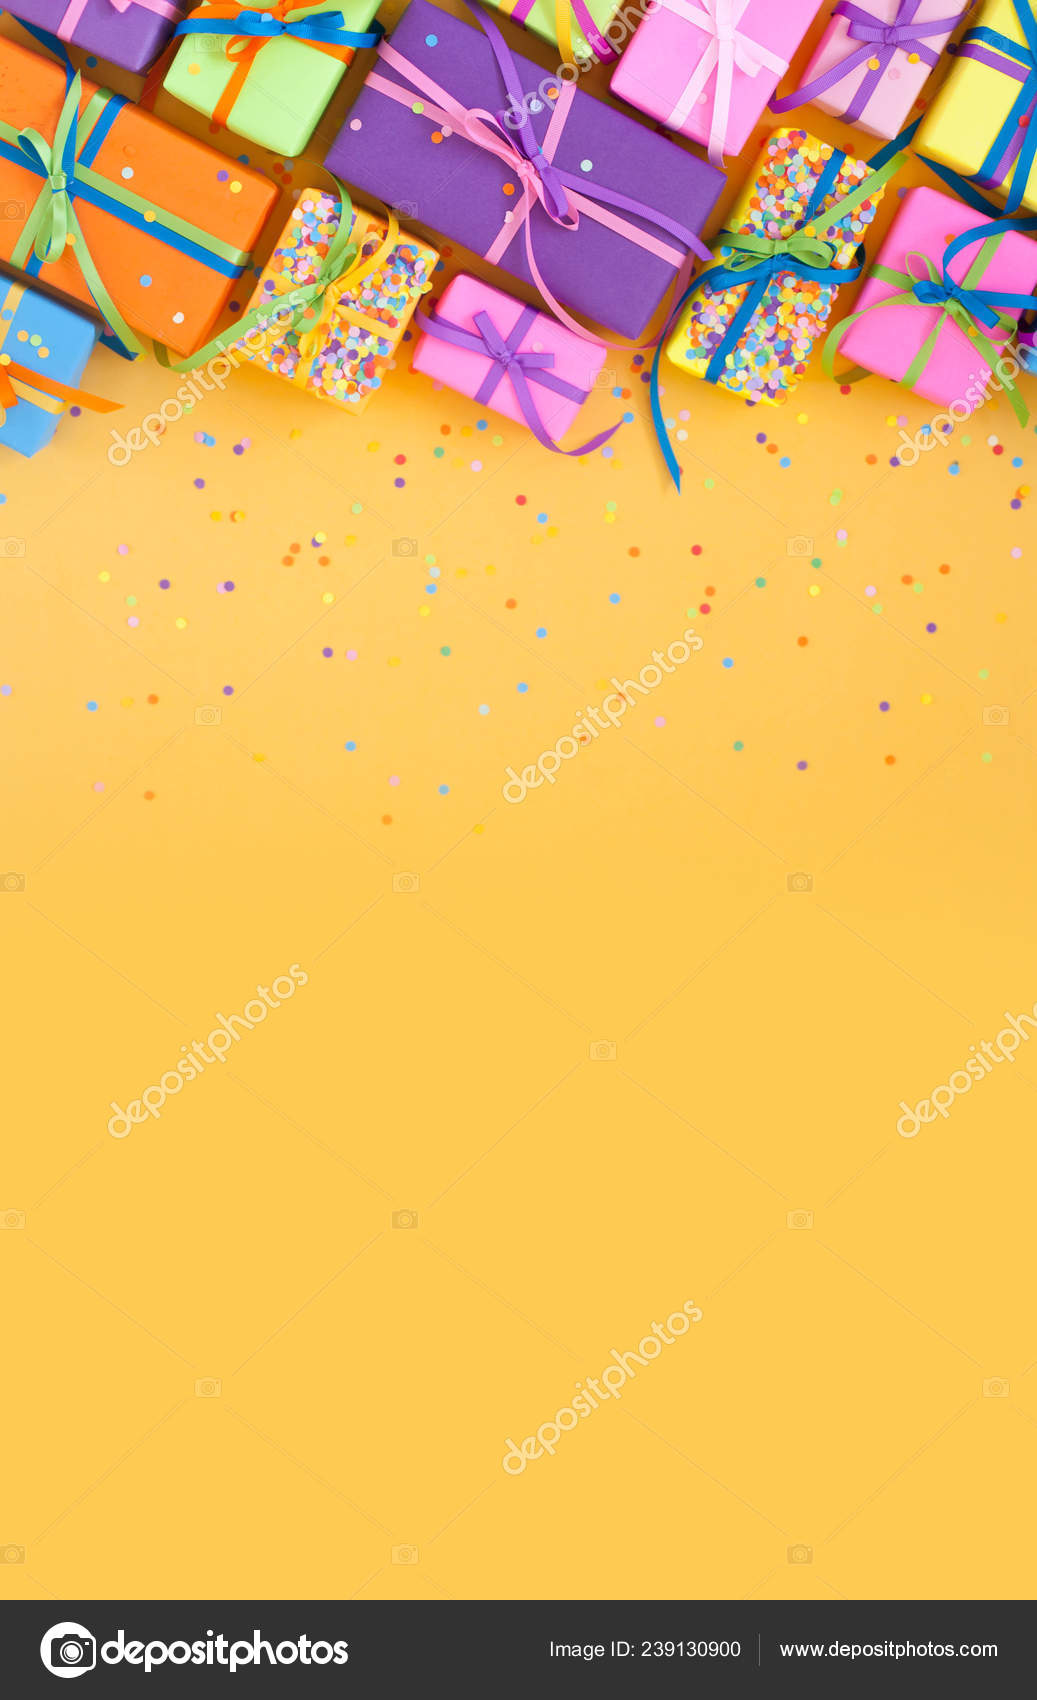 Colored Gift Boxes Colorful Ribbons Yellow Background Gifts